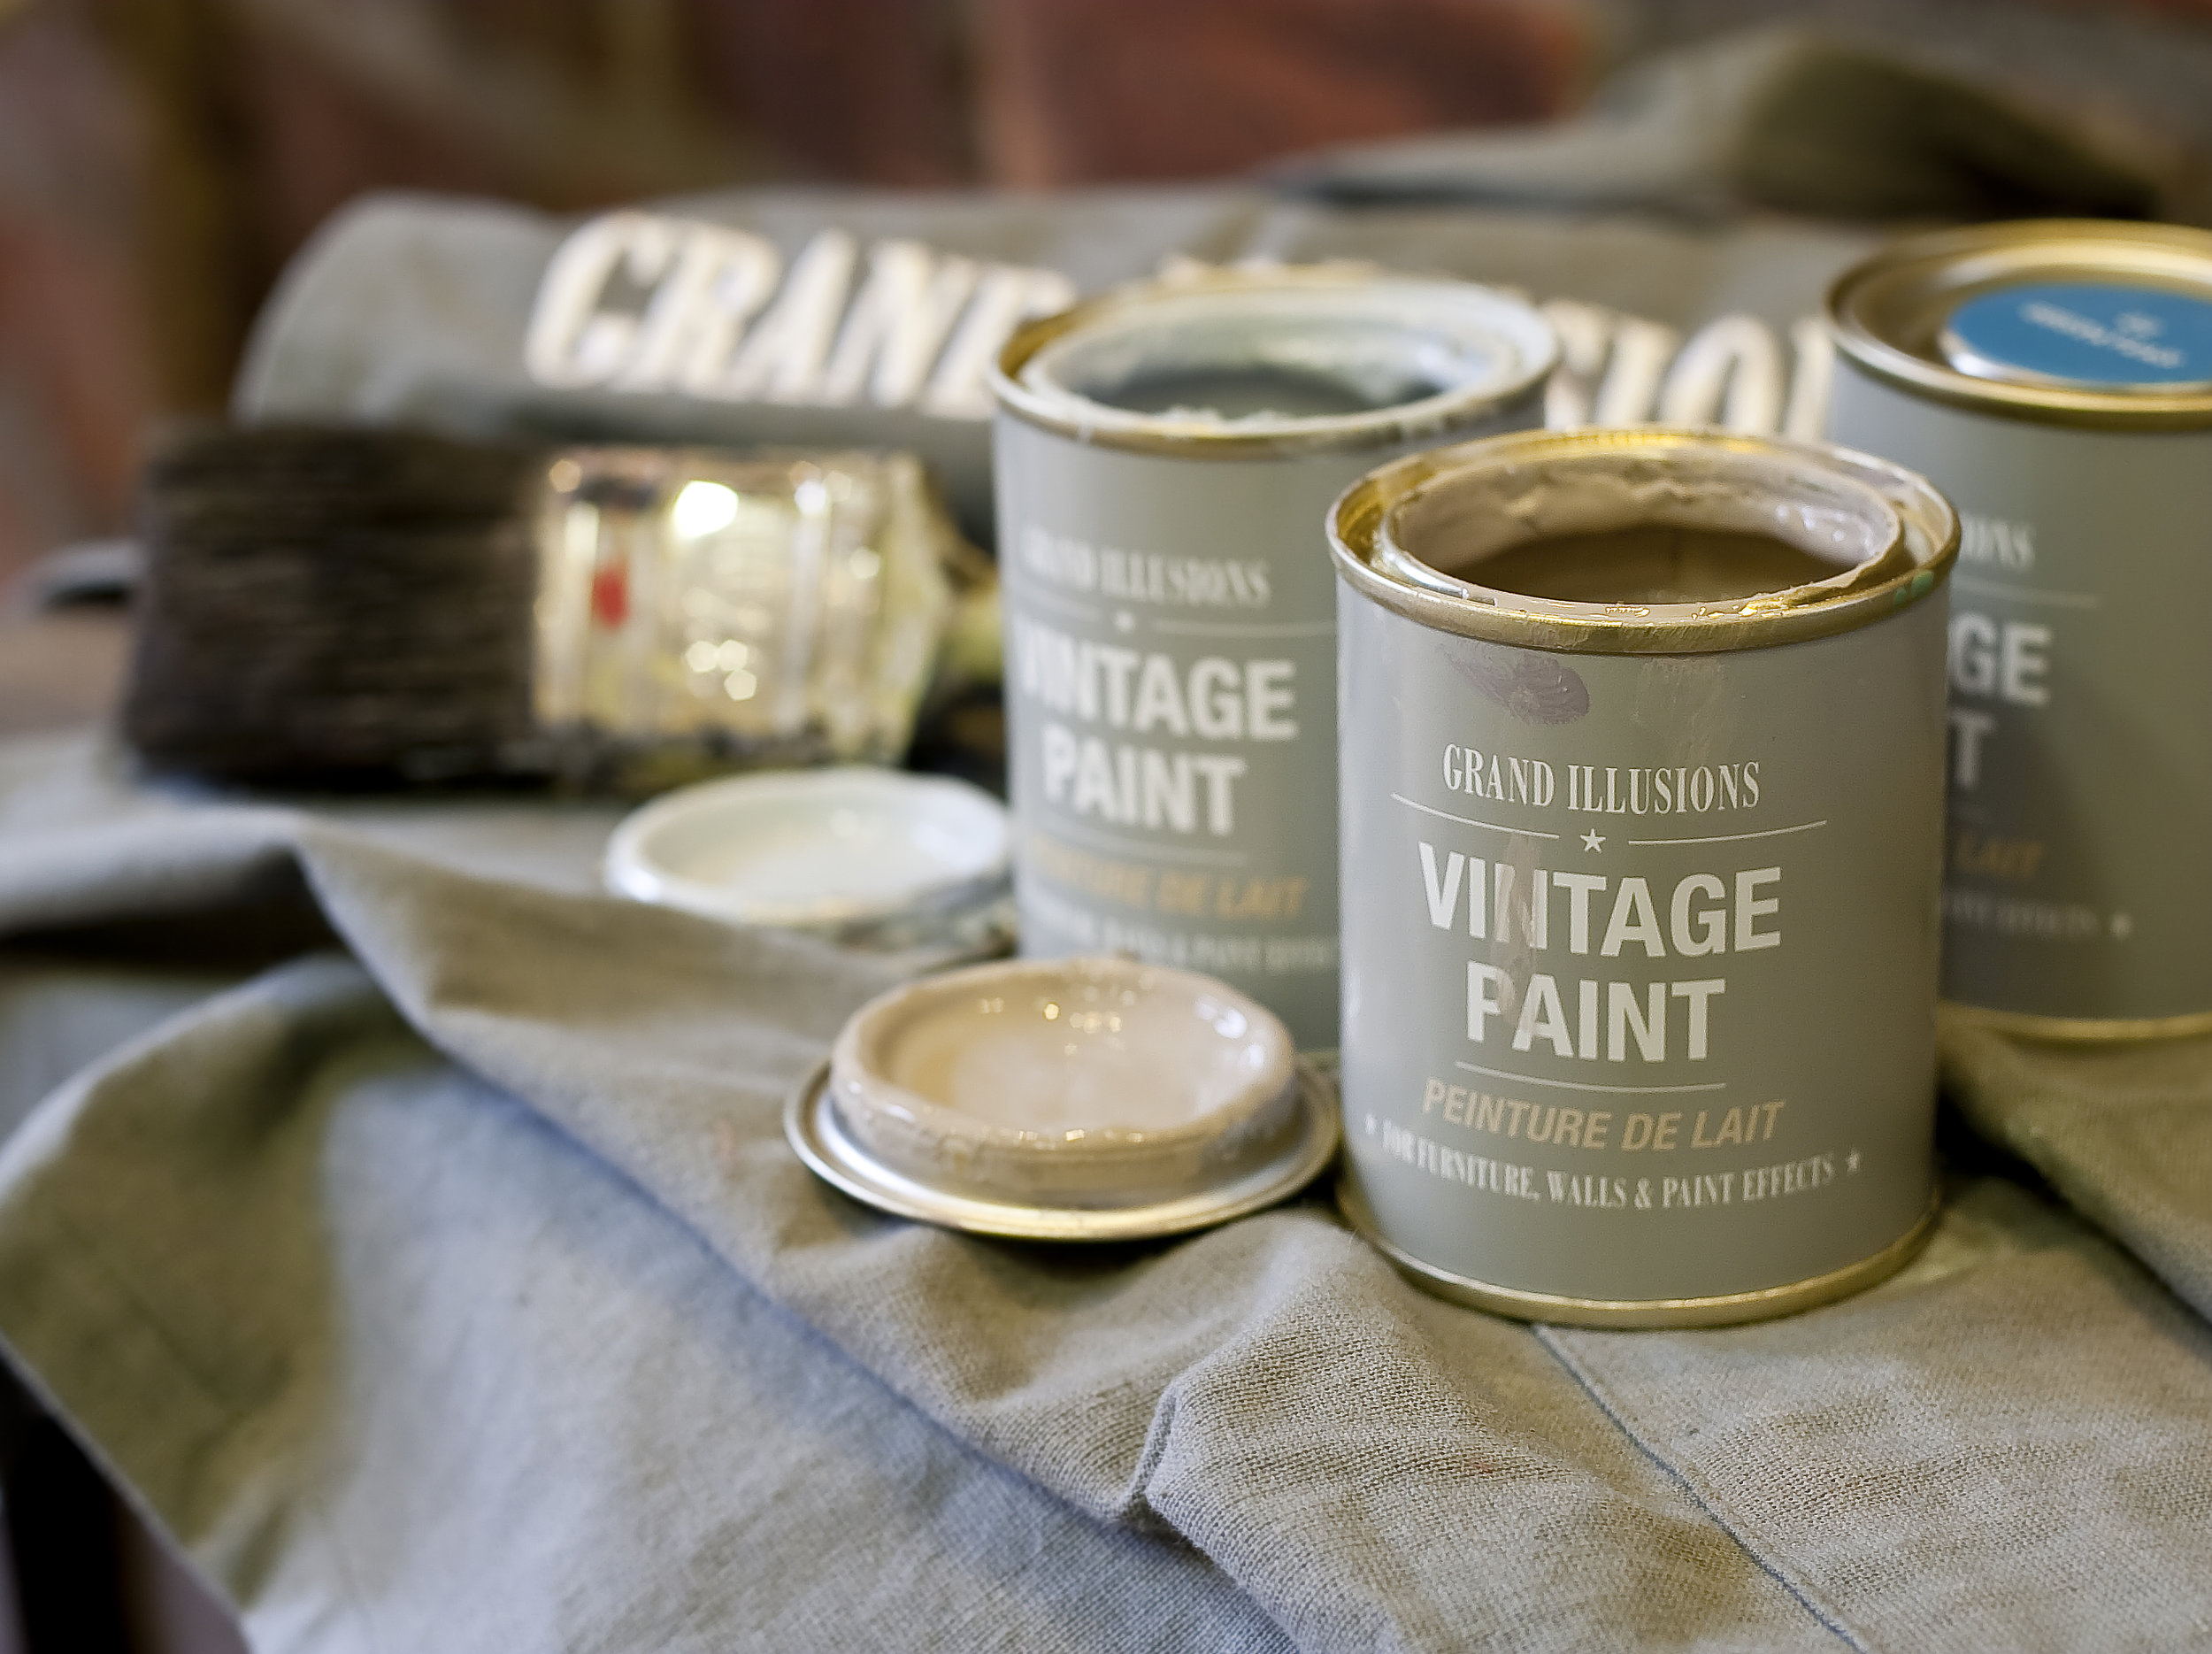 Three Vintage paint pots with lids removed